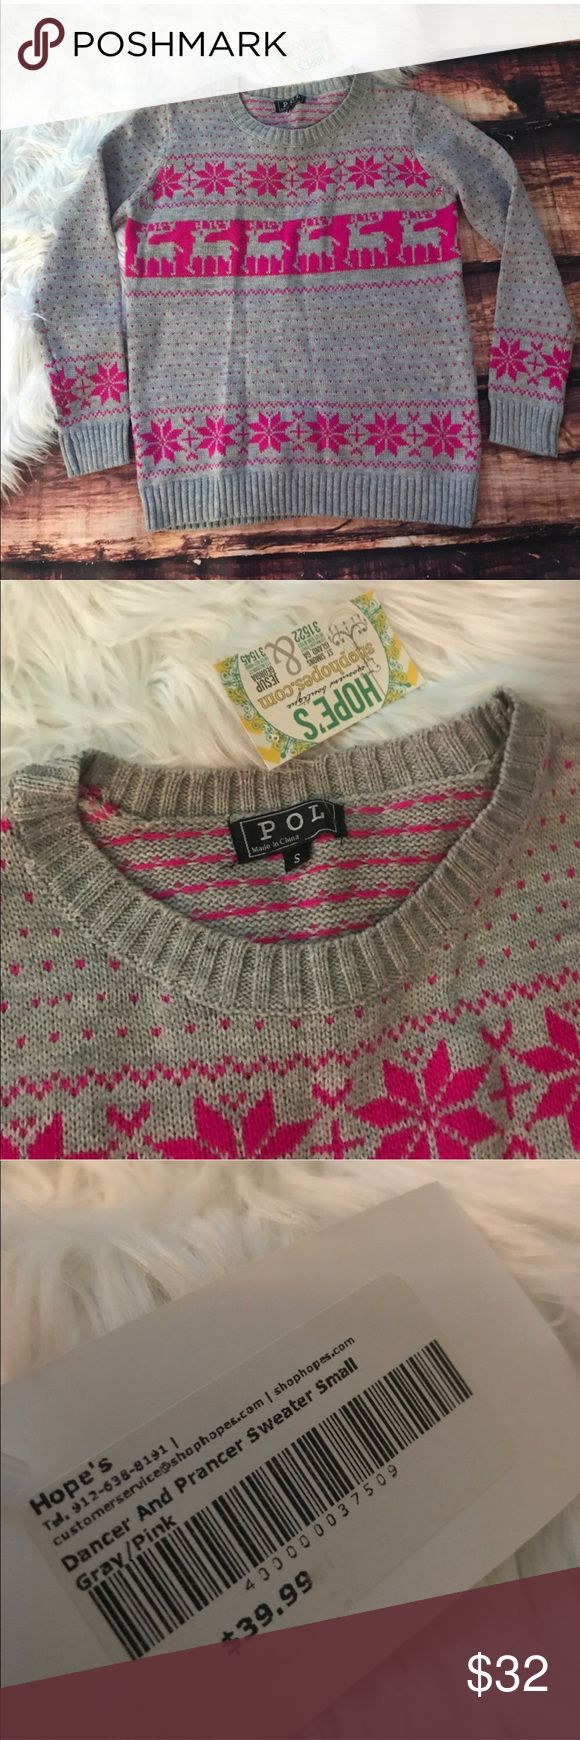 Shop Hope Boutique Christmas Reindeer Sweater New with tags Christmas sweater! From shop hopes boutique. Perfect condition. Measures approximately 19 1/2 inches from armpit to armpit shop hopes Sweaters